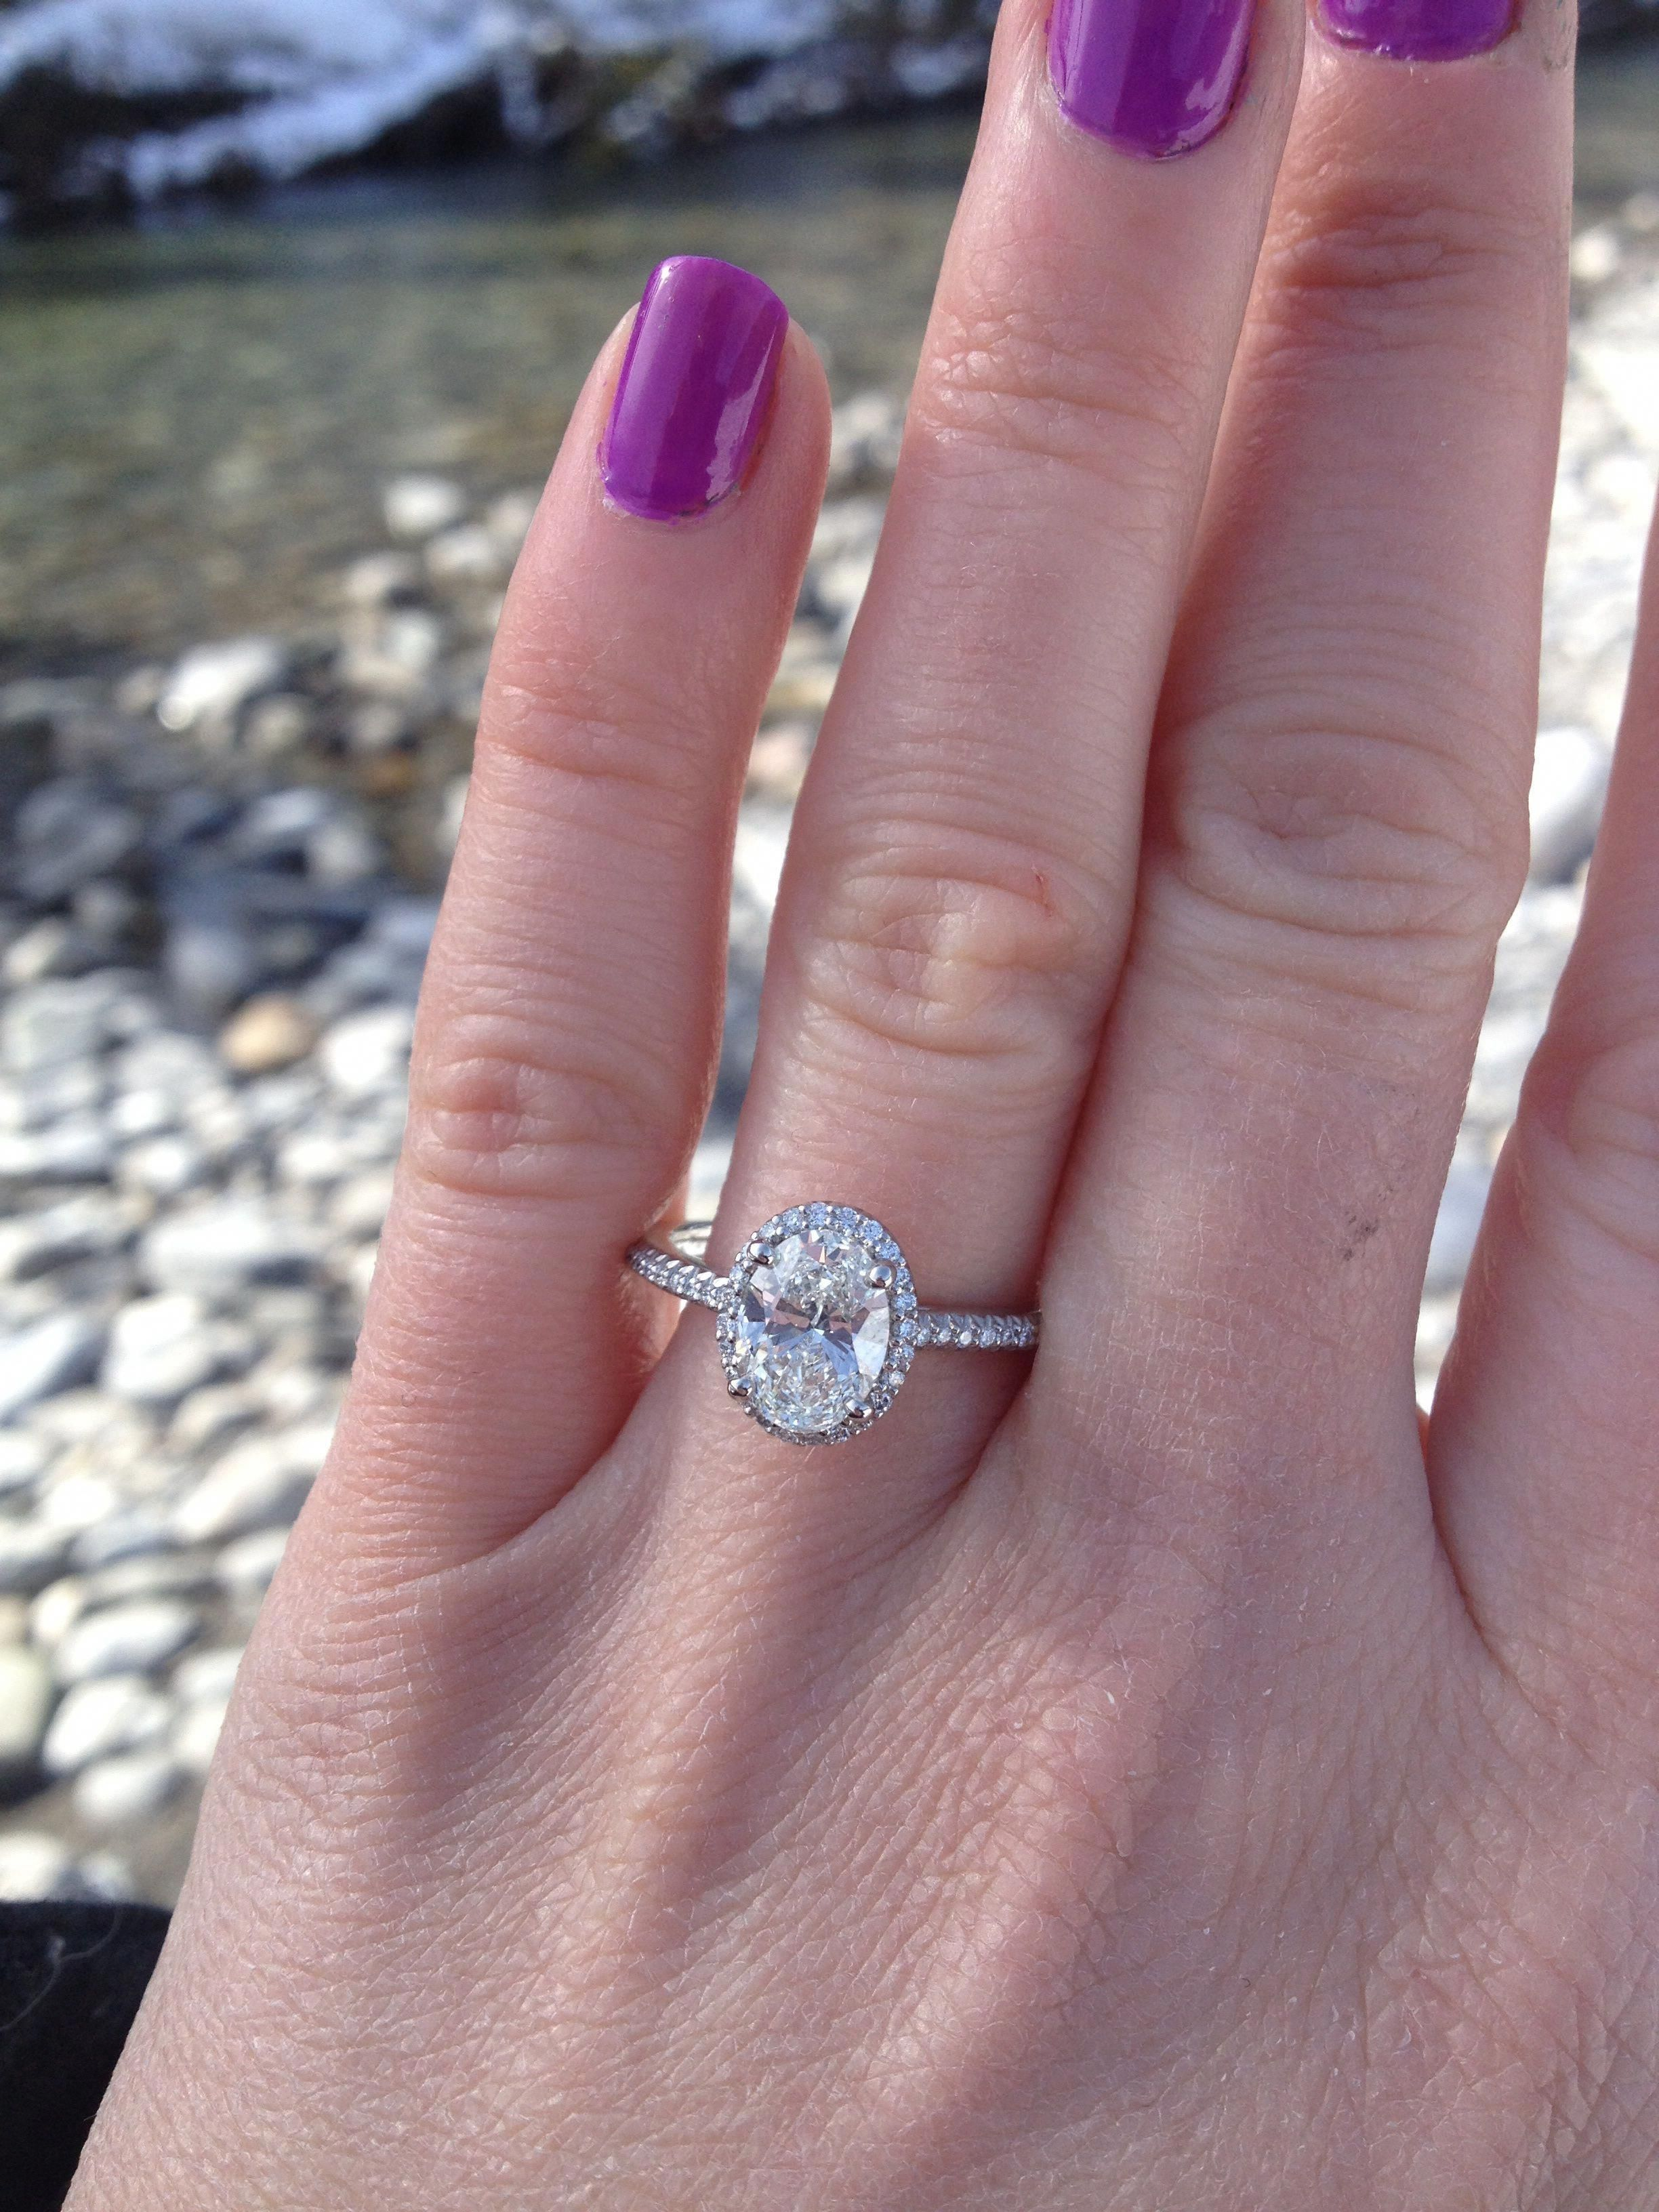 size 5.25 finger. It is a 1.40 carat center stone with 0